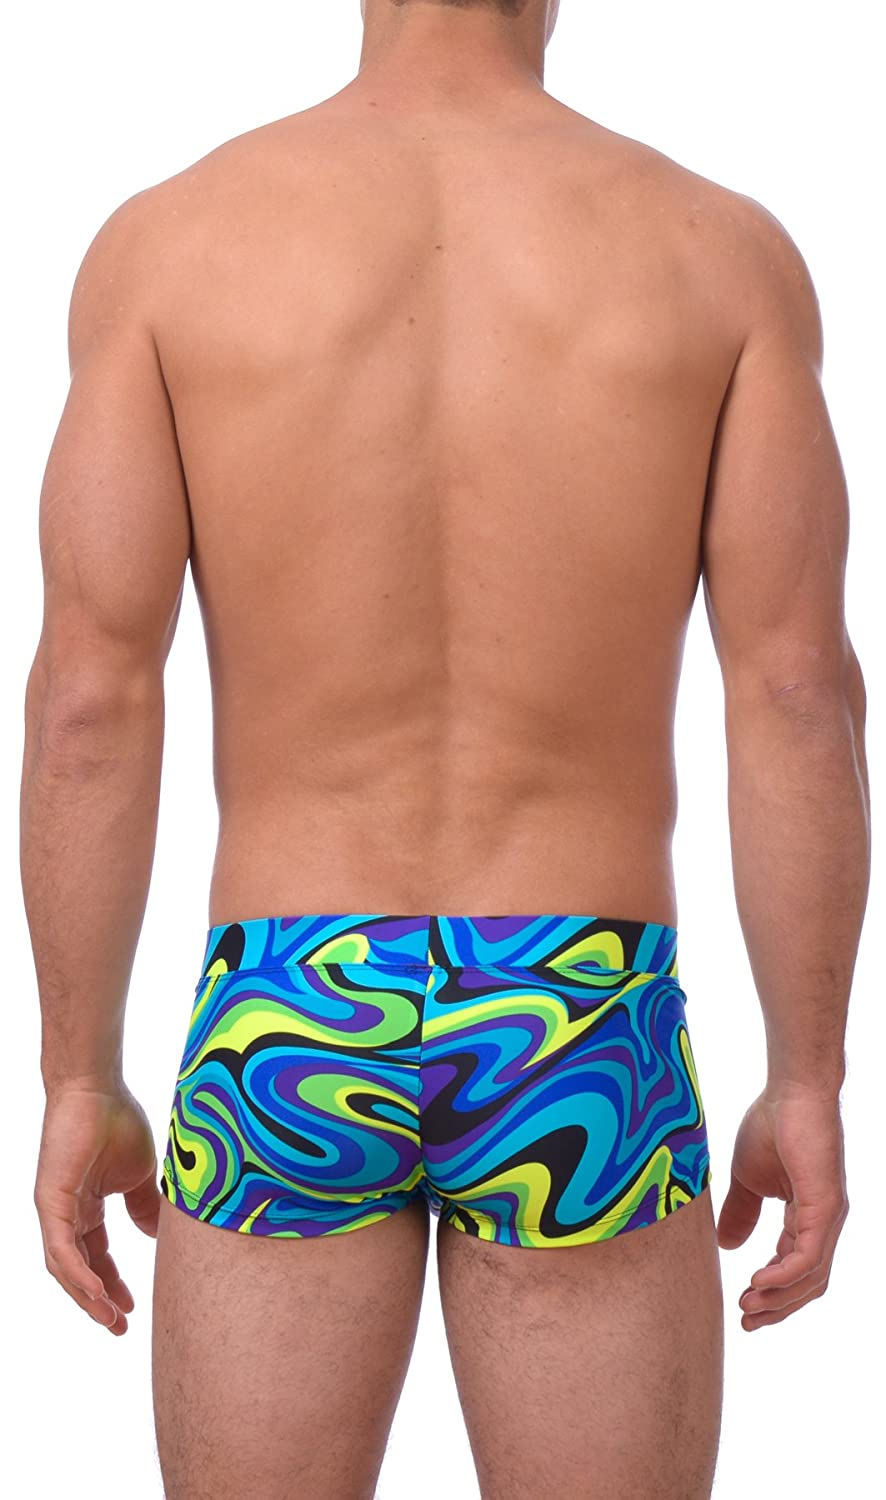 c1893084aa706 Amazon.com  Gary Majdell Sport Mens Printed Hot Body Boxer Swimsuit   Clothing